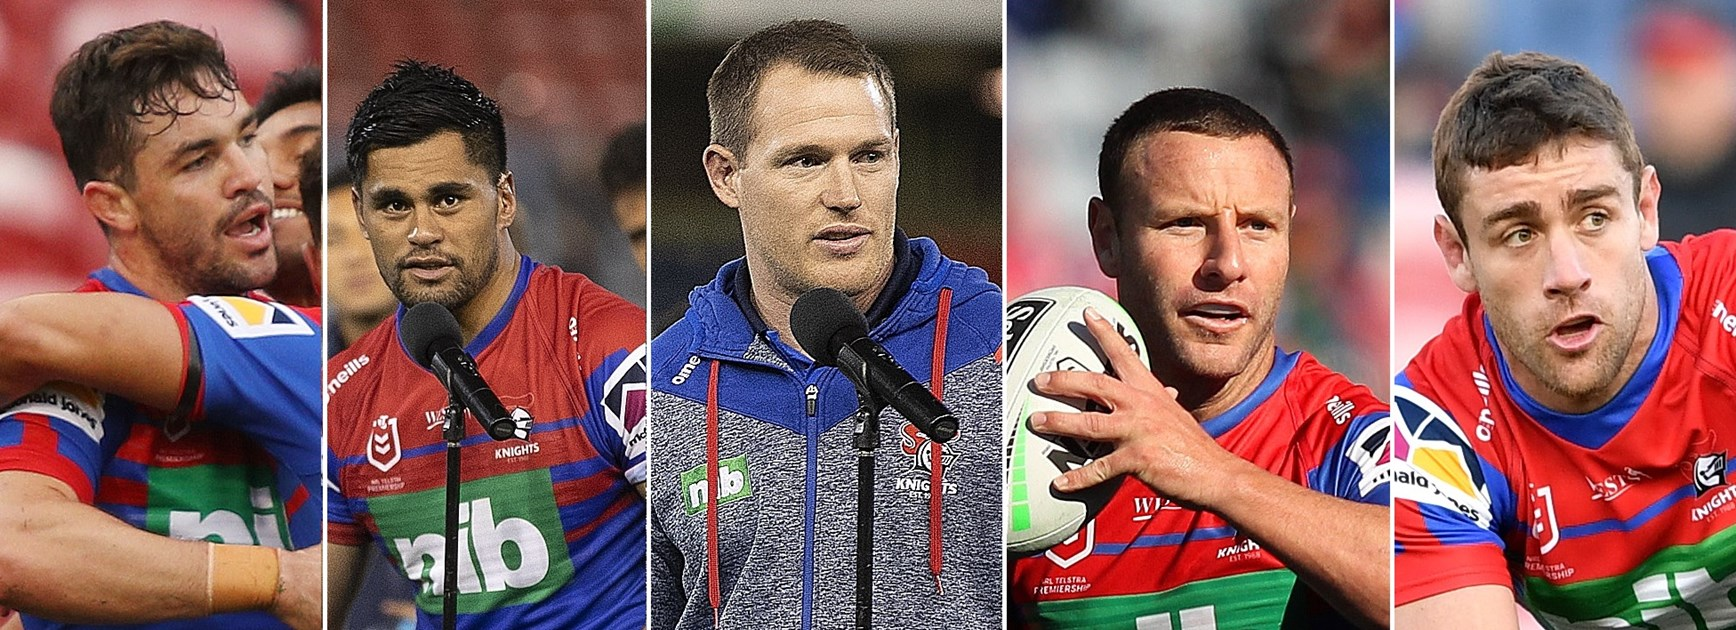 Departures! Farewell to Knights leaving in 2020